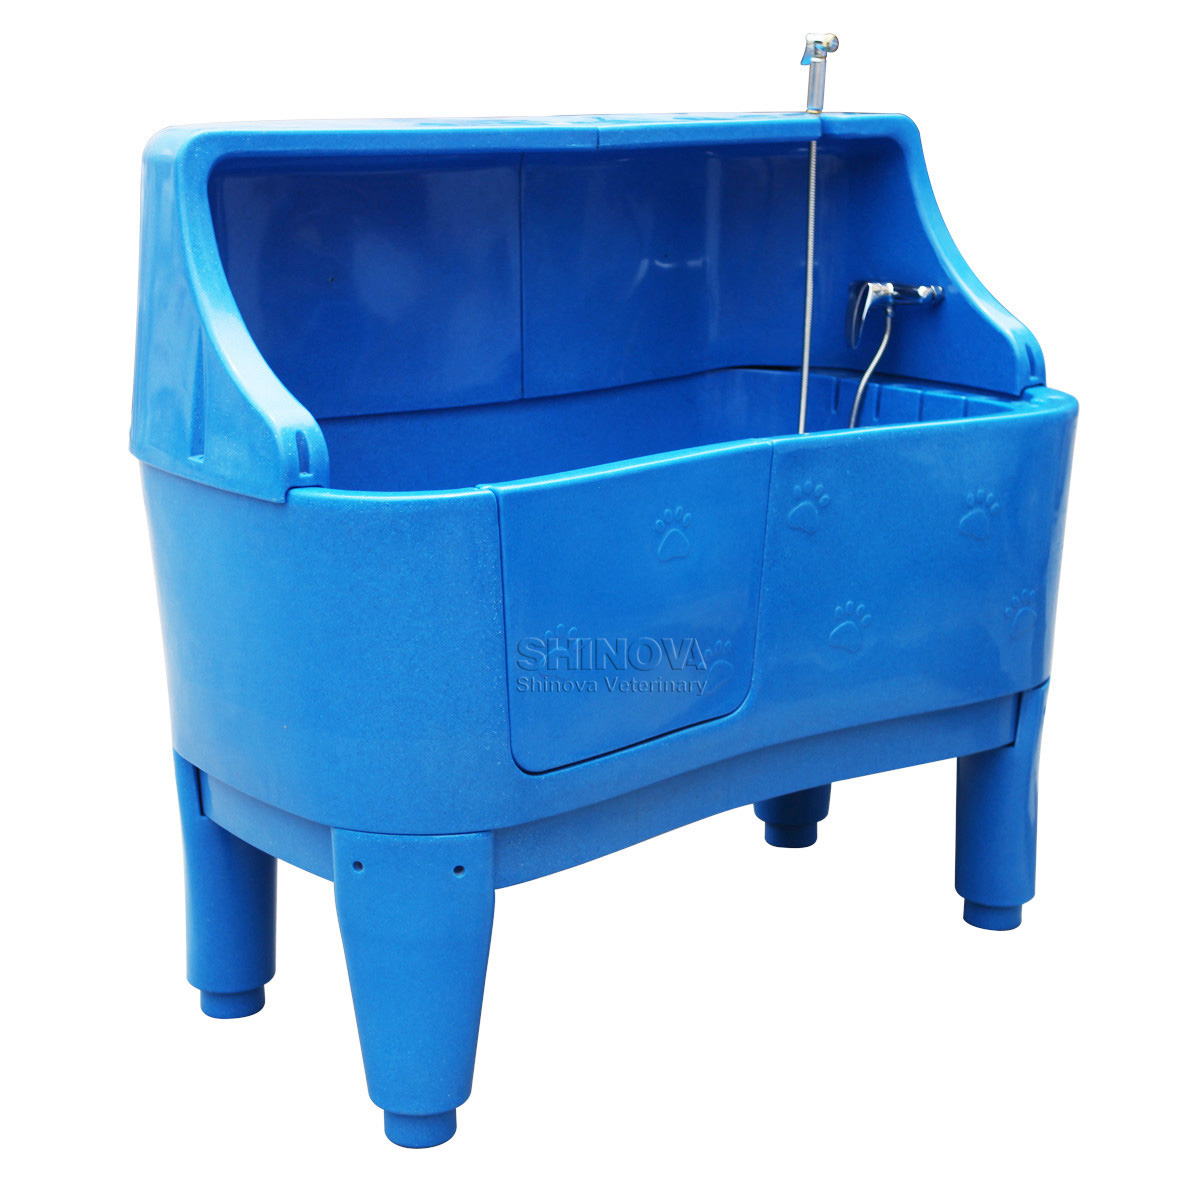 Hydraulic Dog Bath Tub : Bath tub shinova vet veterinary ultrasound